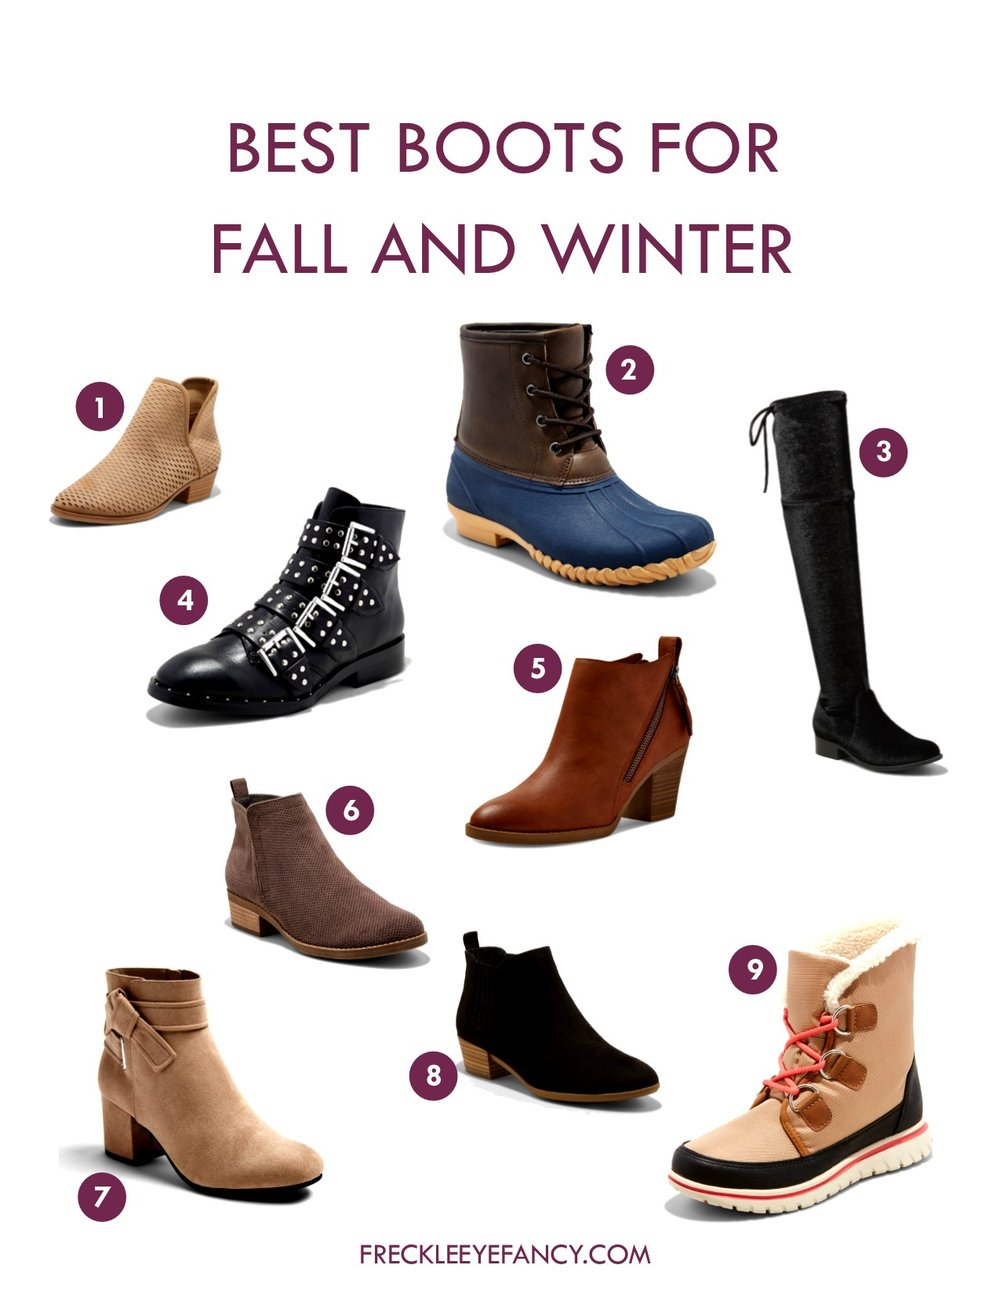 Best Boots for Fall and Winter with site.jpg